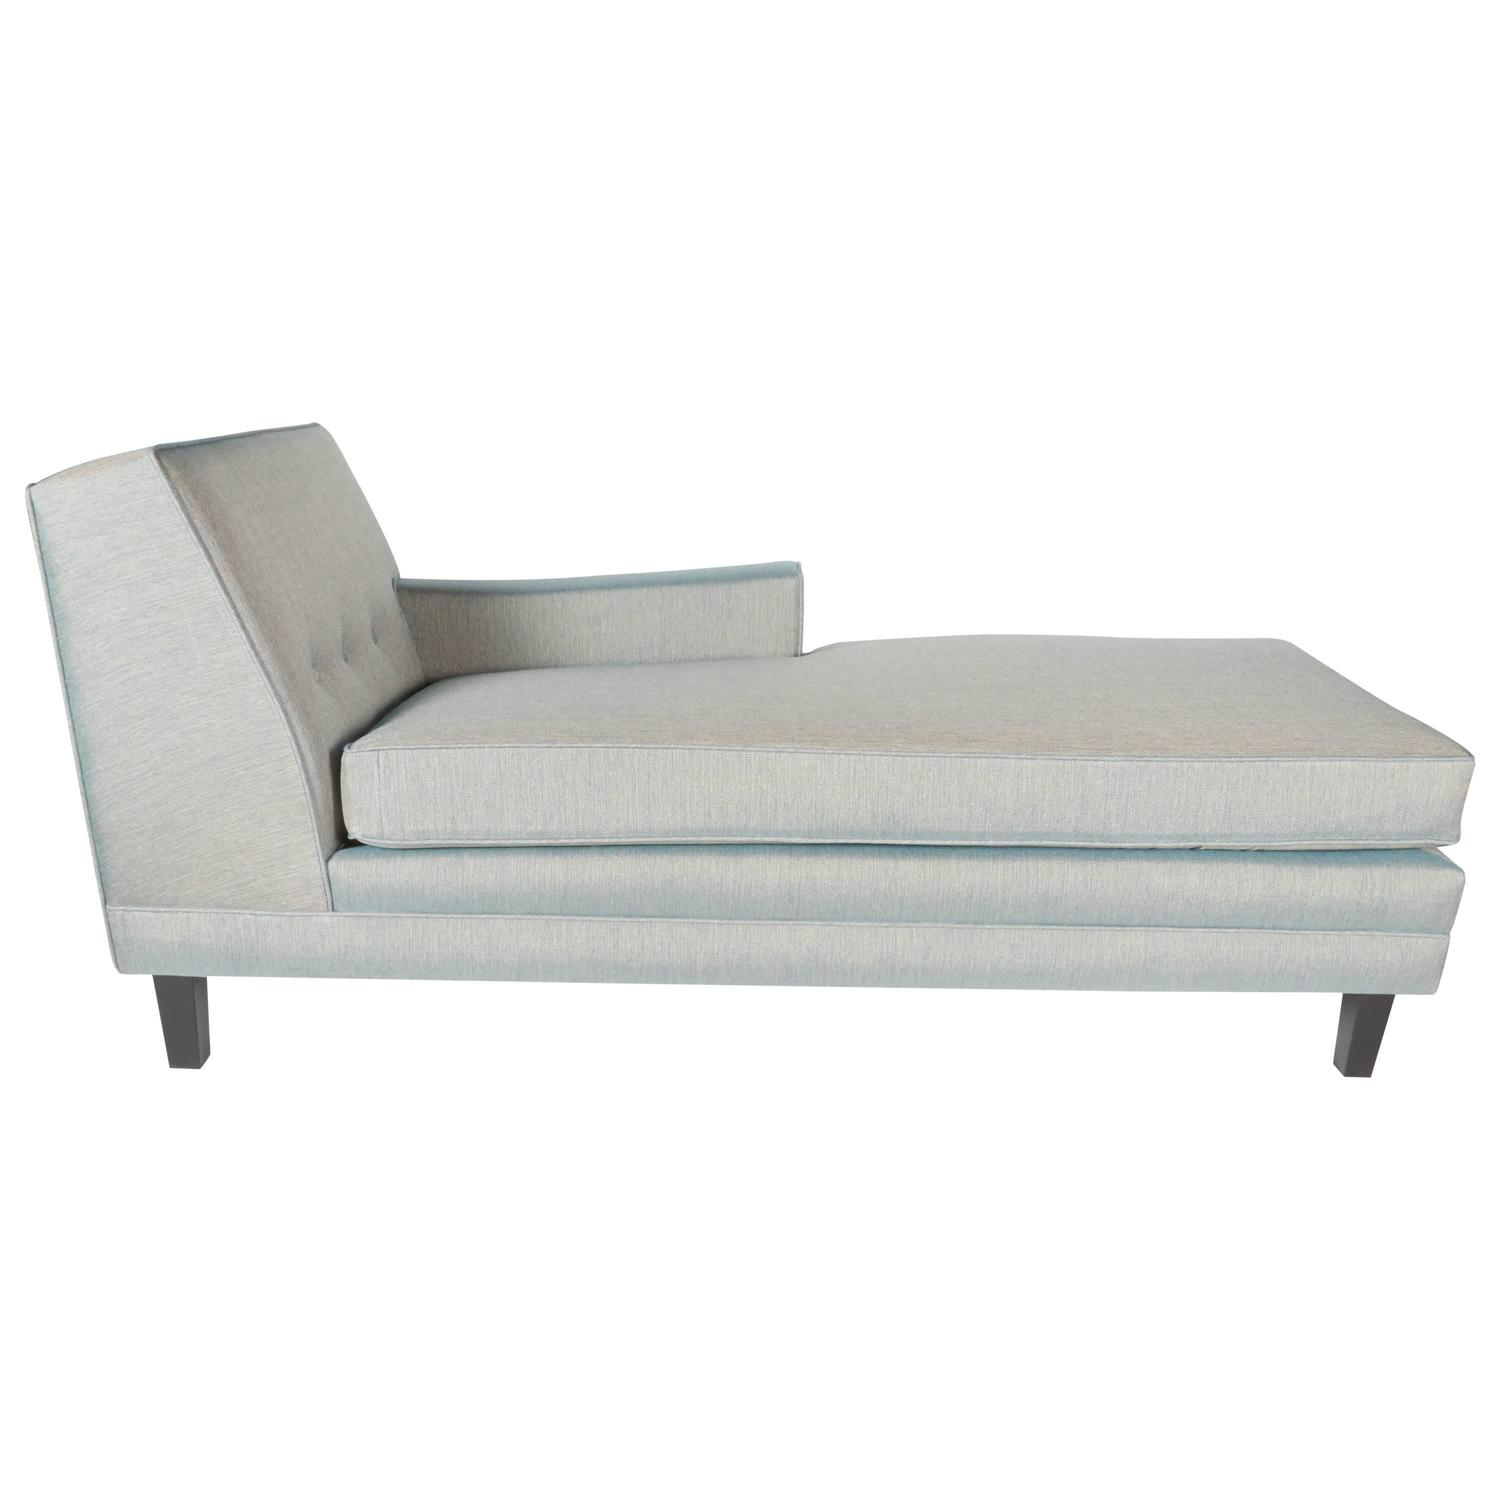 Mid century modern chaise lounge with low profile design for Chaise longue design piscine